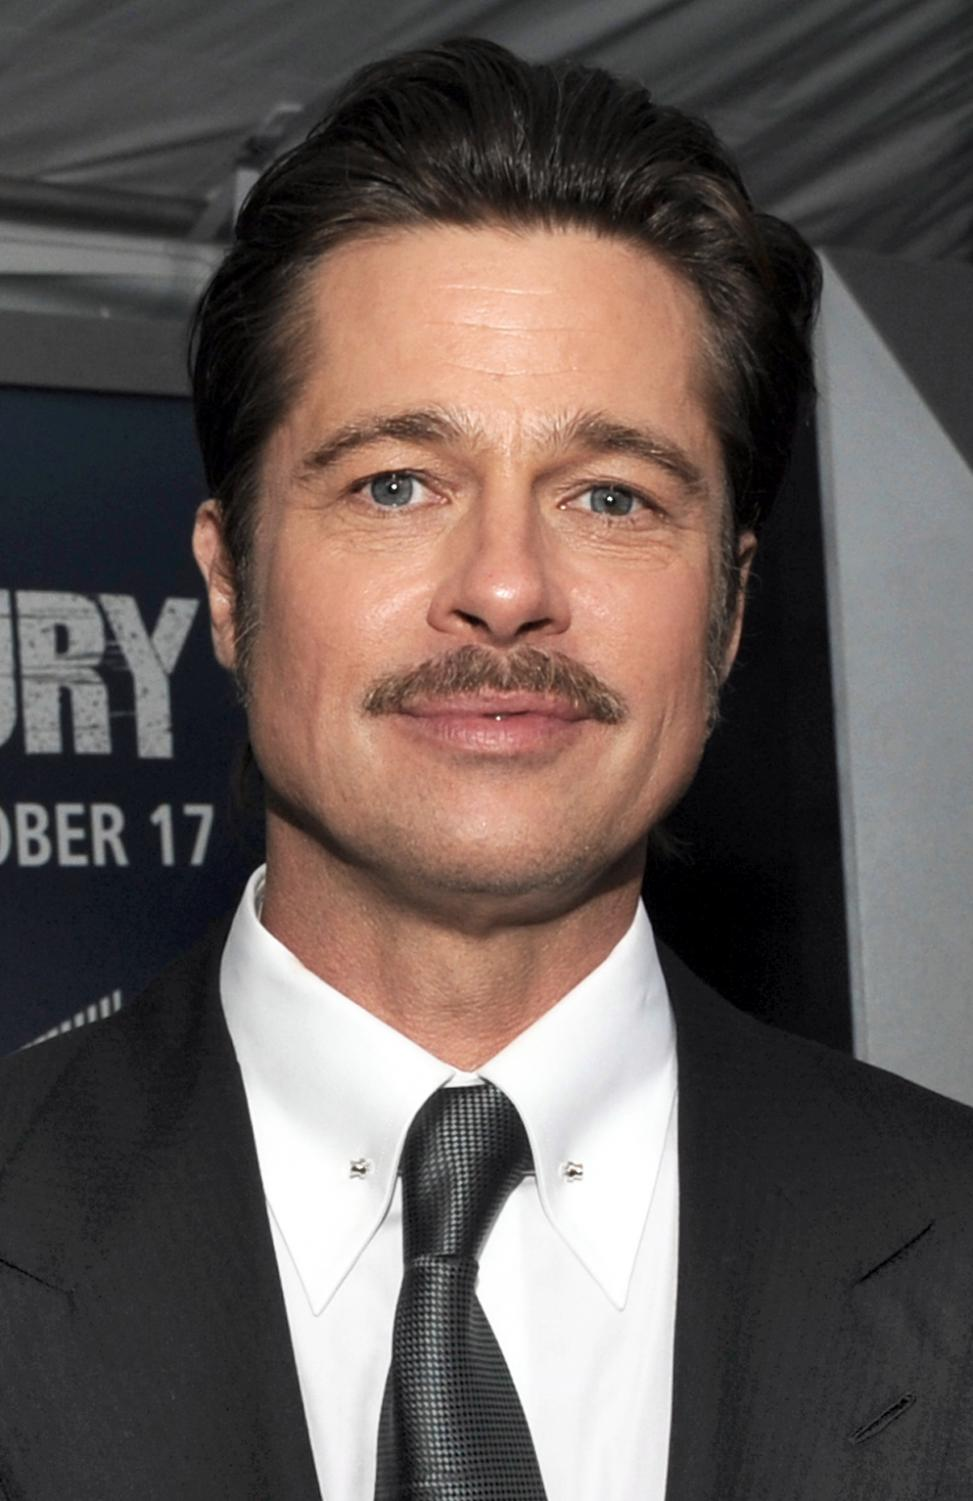 Brad Pitt, starred as  character Major Roy McBride, who is vital in the mission to correct what his father did.